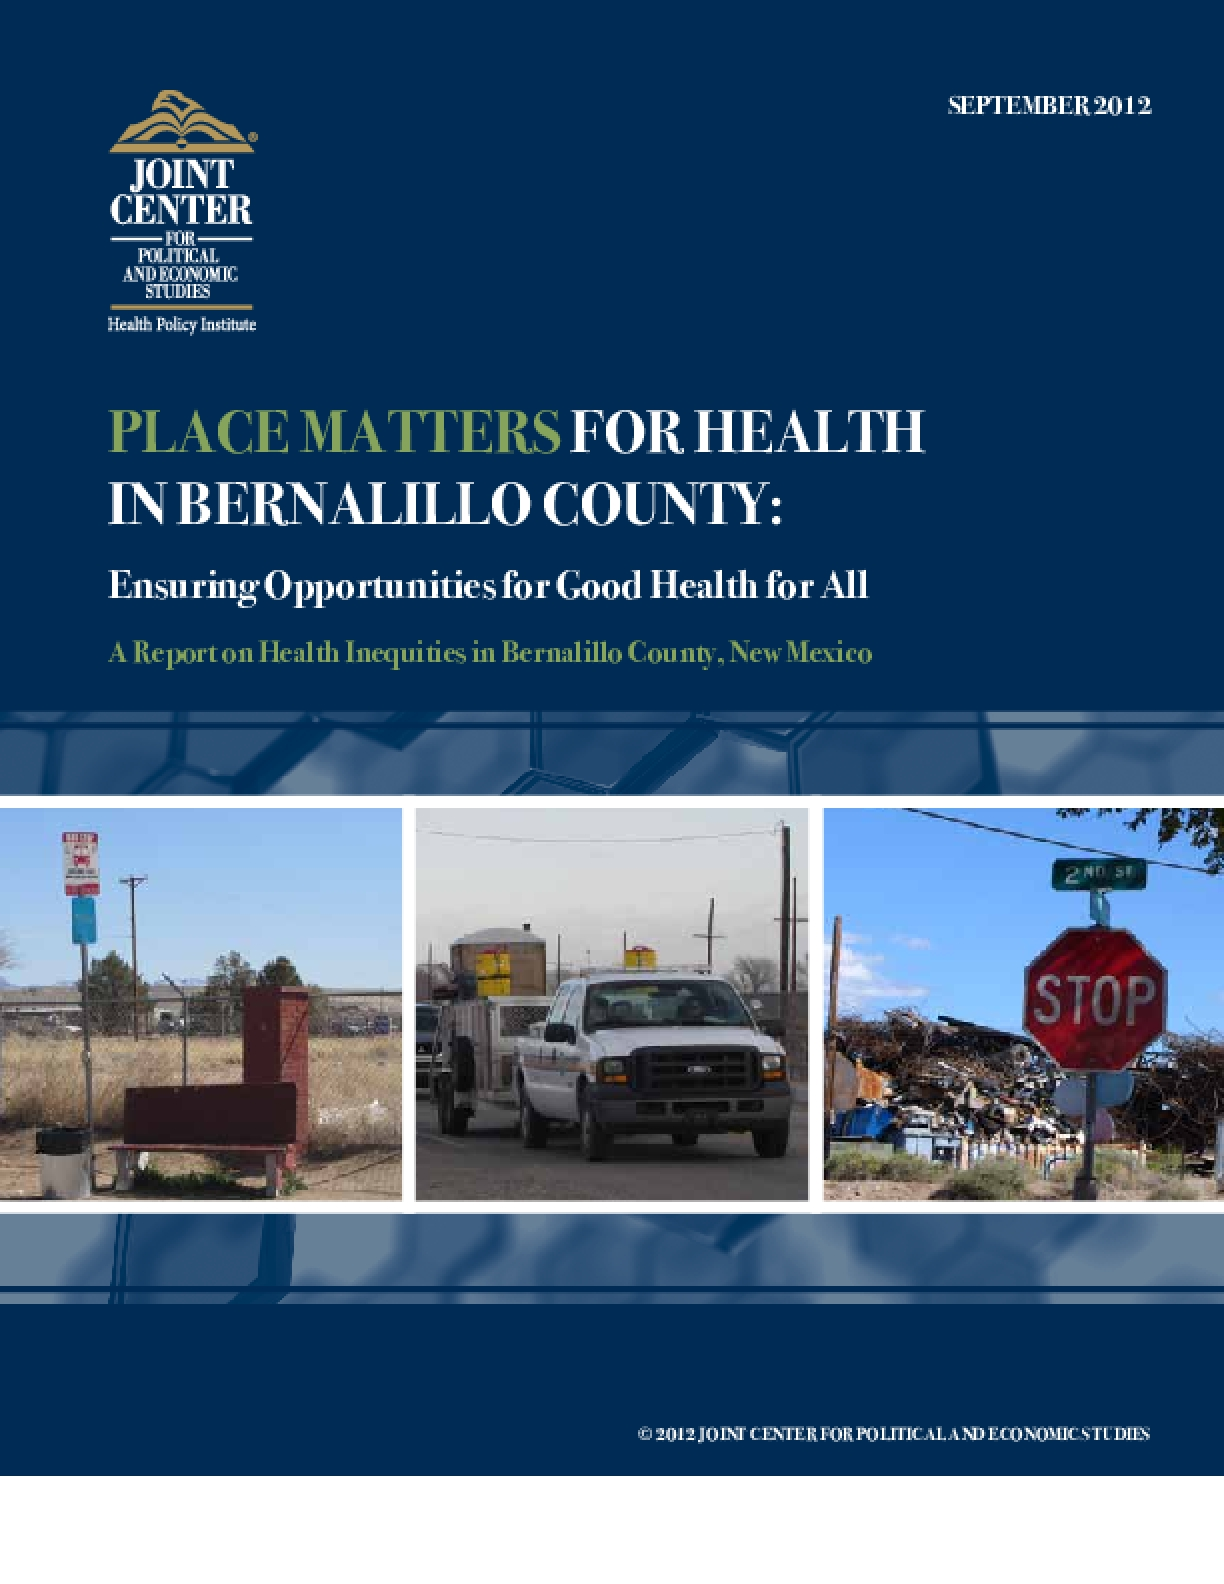 Place Matters for Health in Bernalillo County: Ensuring Opportunities for Good Health for All, A Report on Health Inequities in Bernalillo County, New Mexico